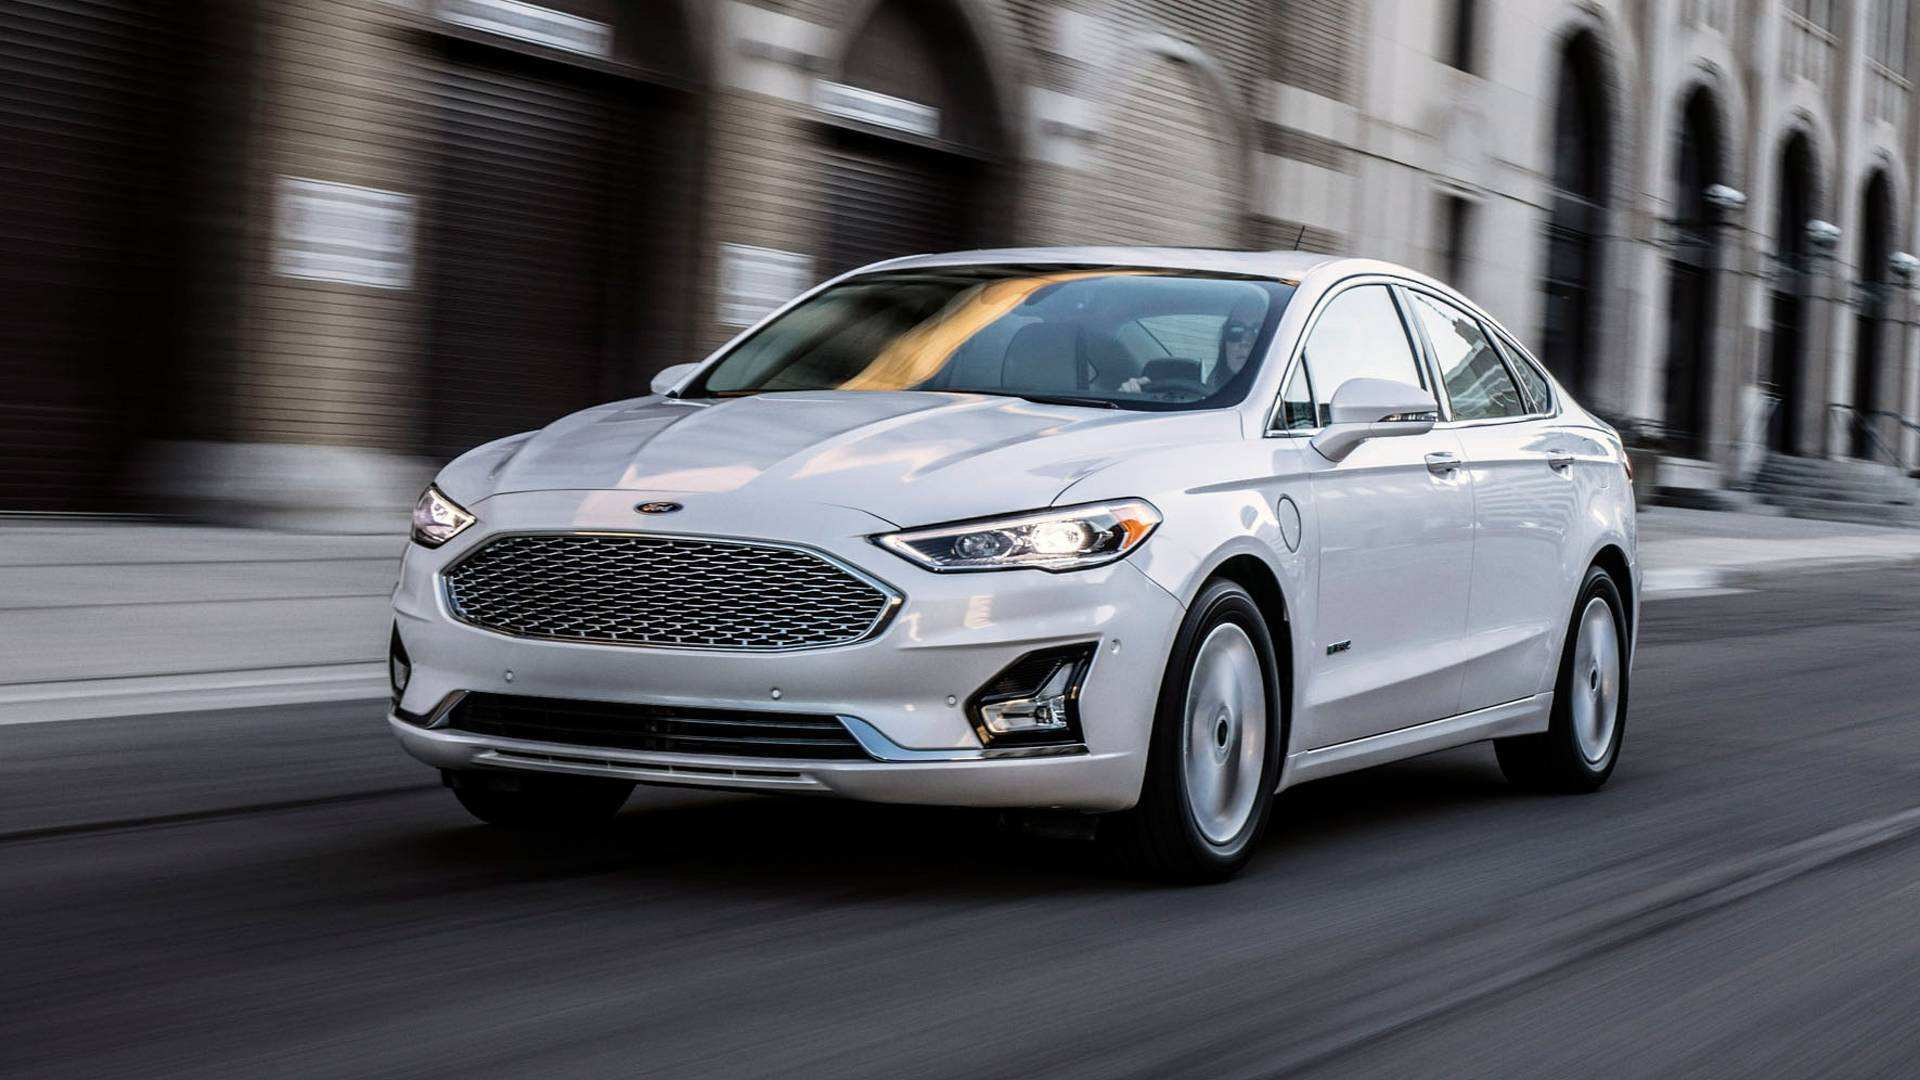 17 All New 2019 Ford Vehicle Lineup Spesification